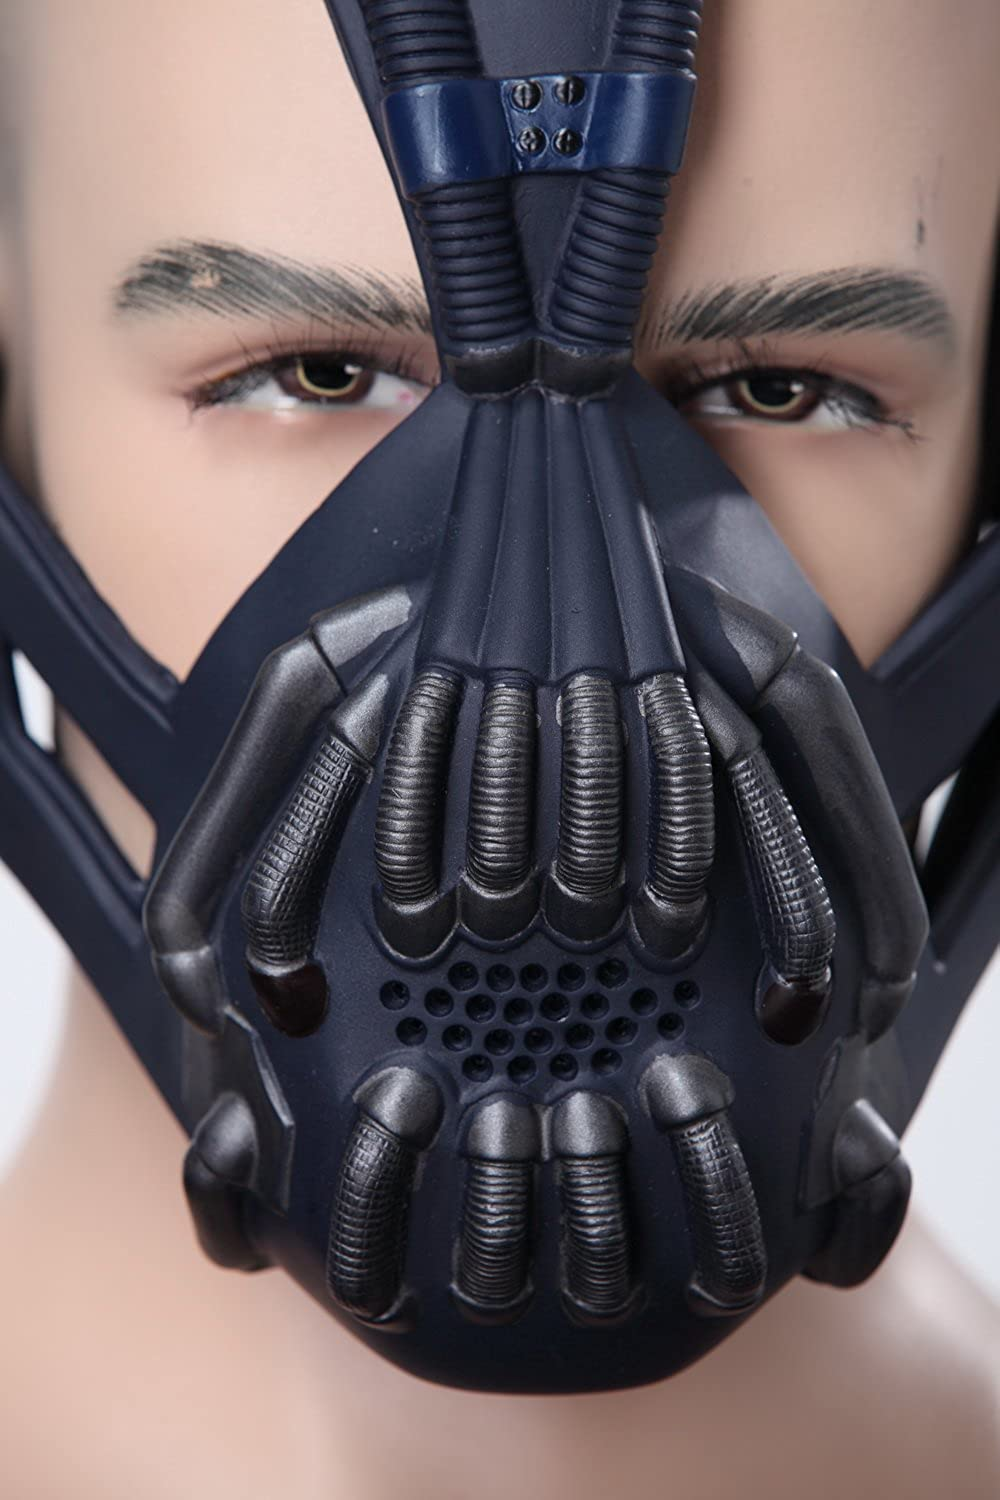 Xcoser Halloween Maschera Bane Cosplay Lattice Film Replica Accessorio Costume Carnevale Halloween Pasqua Fancy Dress Taglia Unica Opera Movie per Unisex Adulti